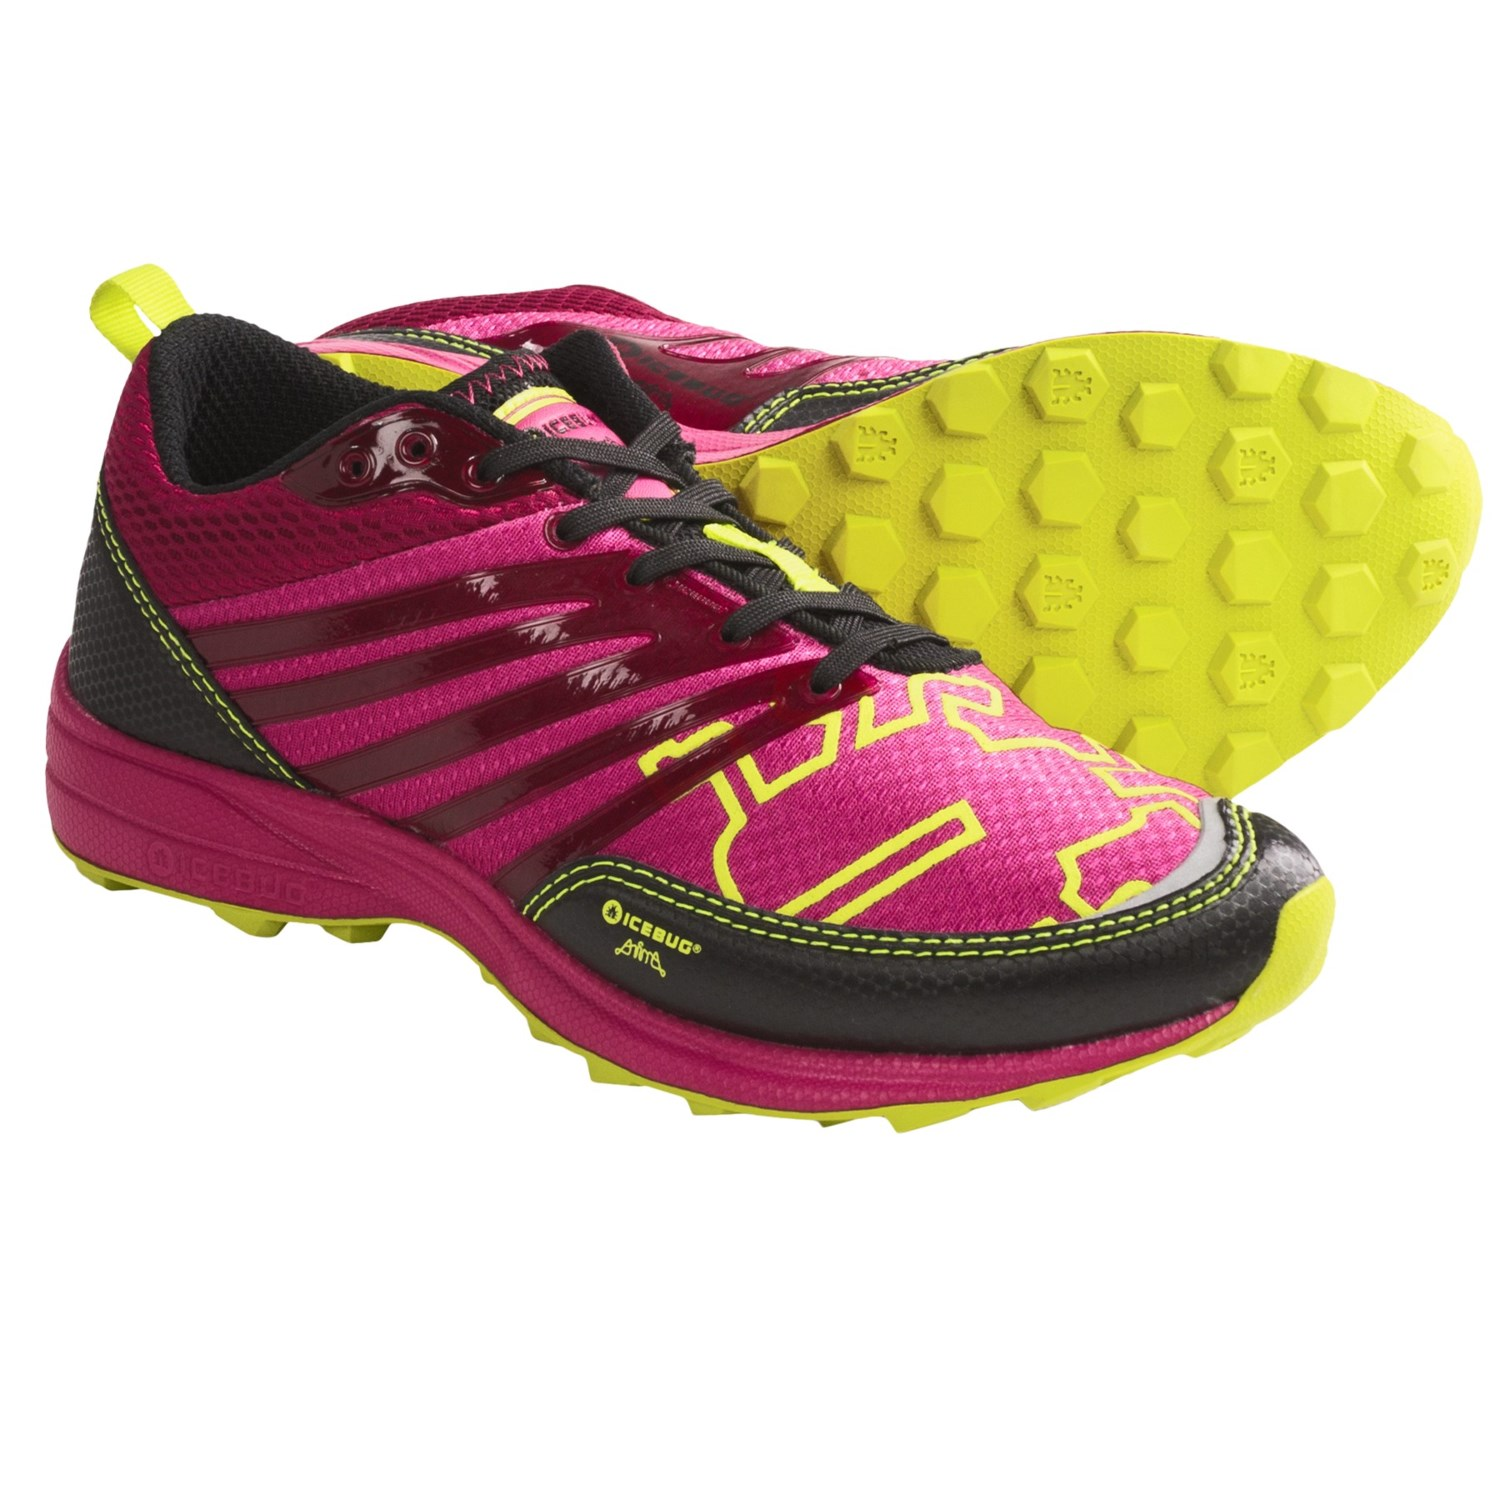 Icebug Trail Running Shoes Review